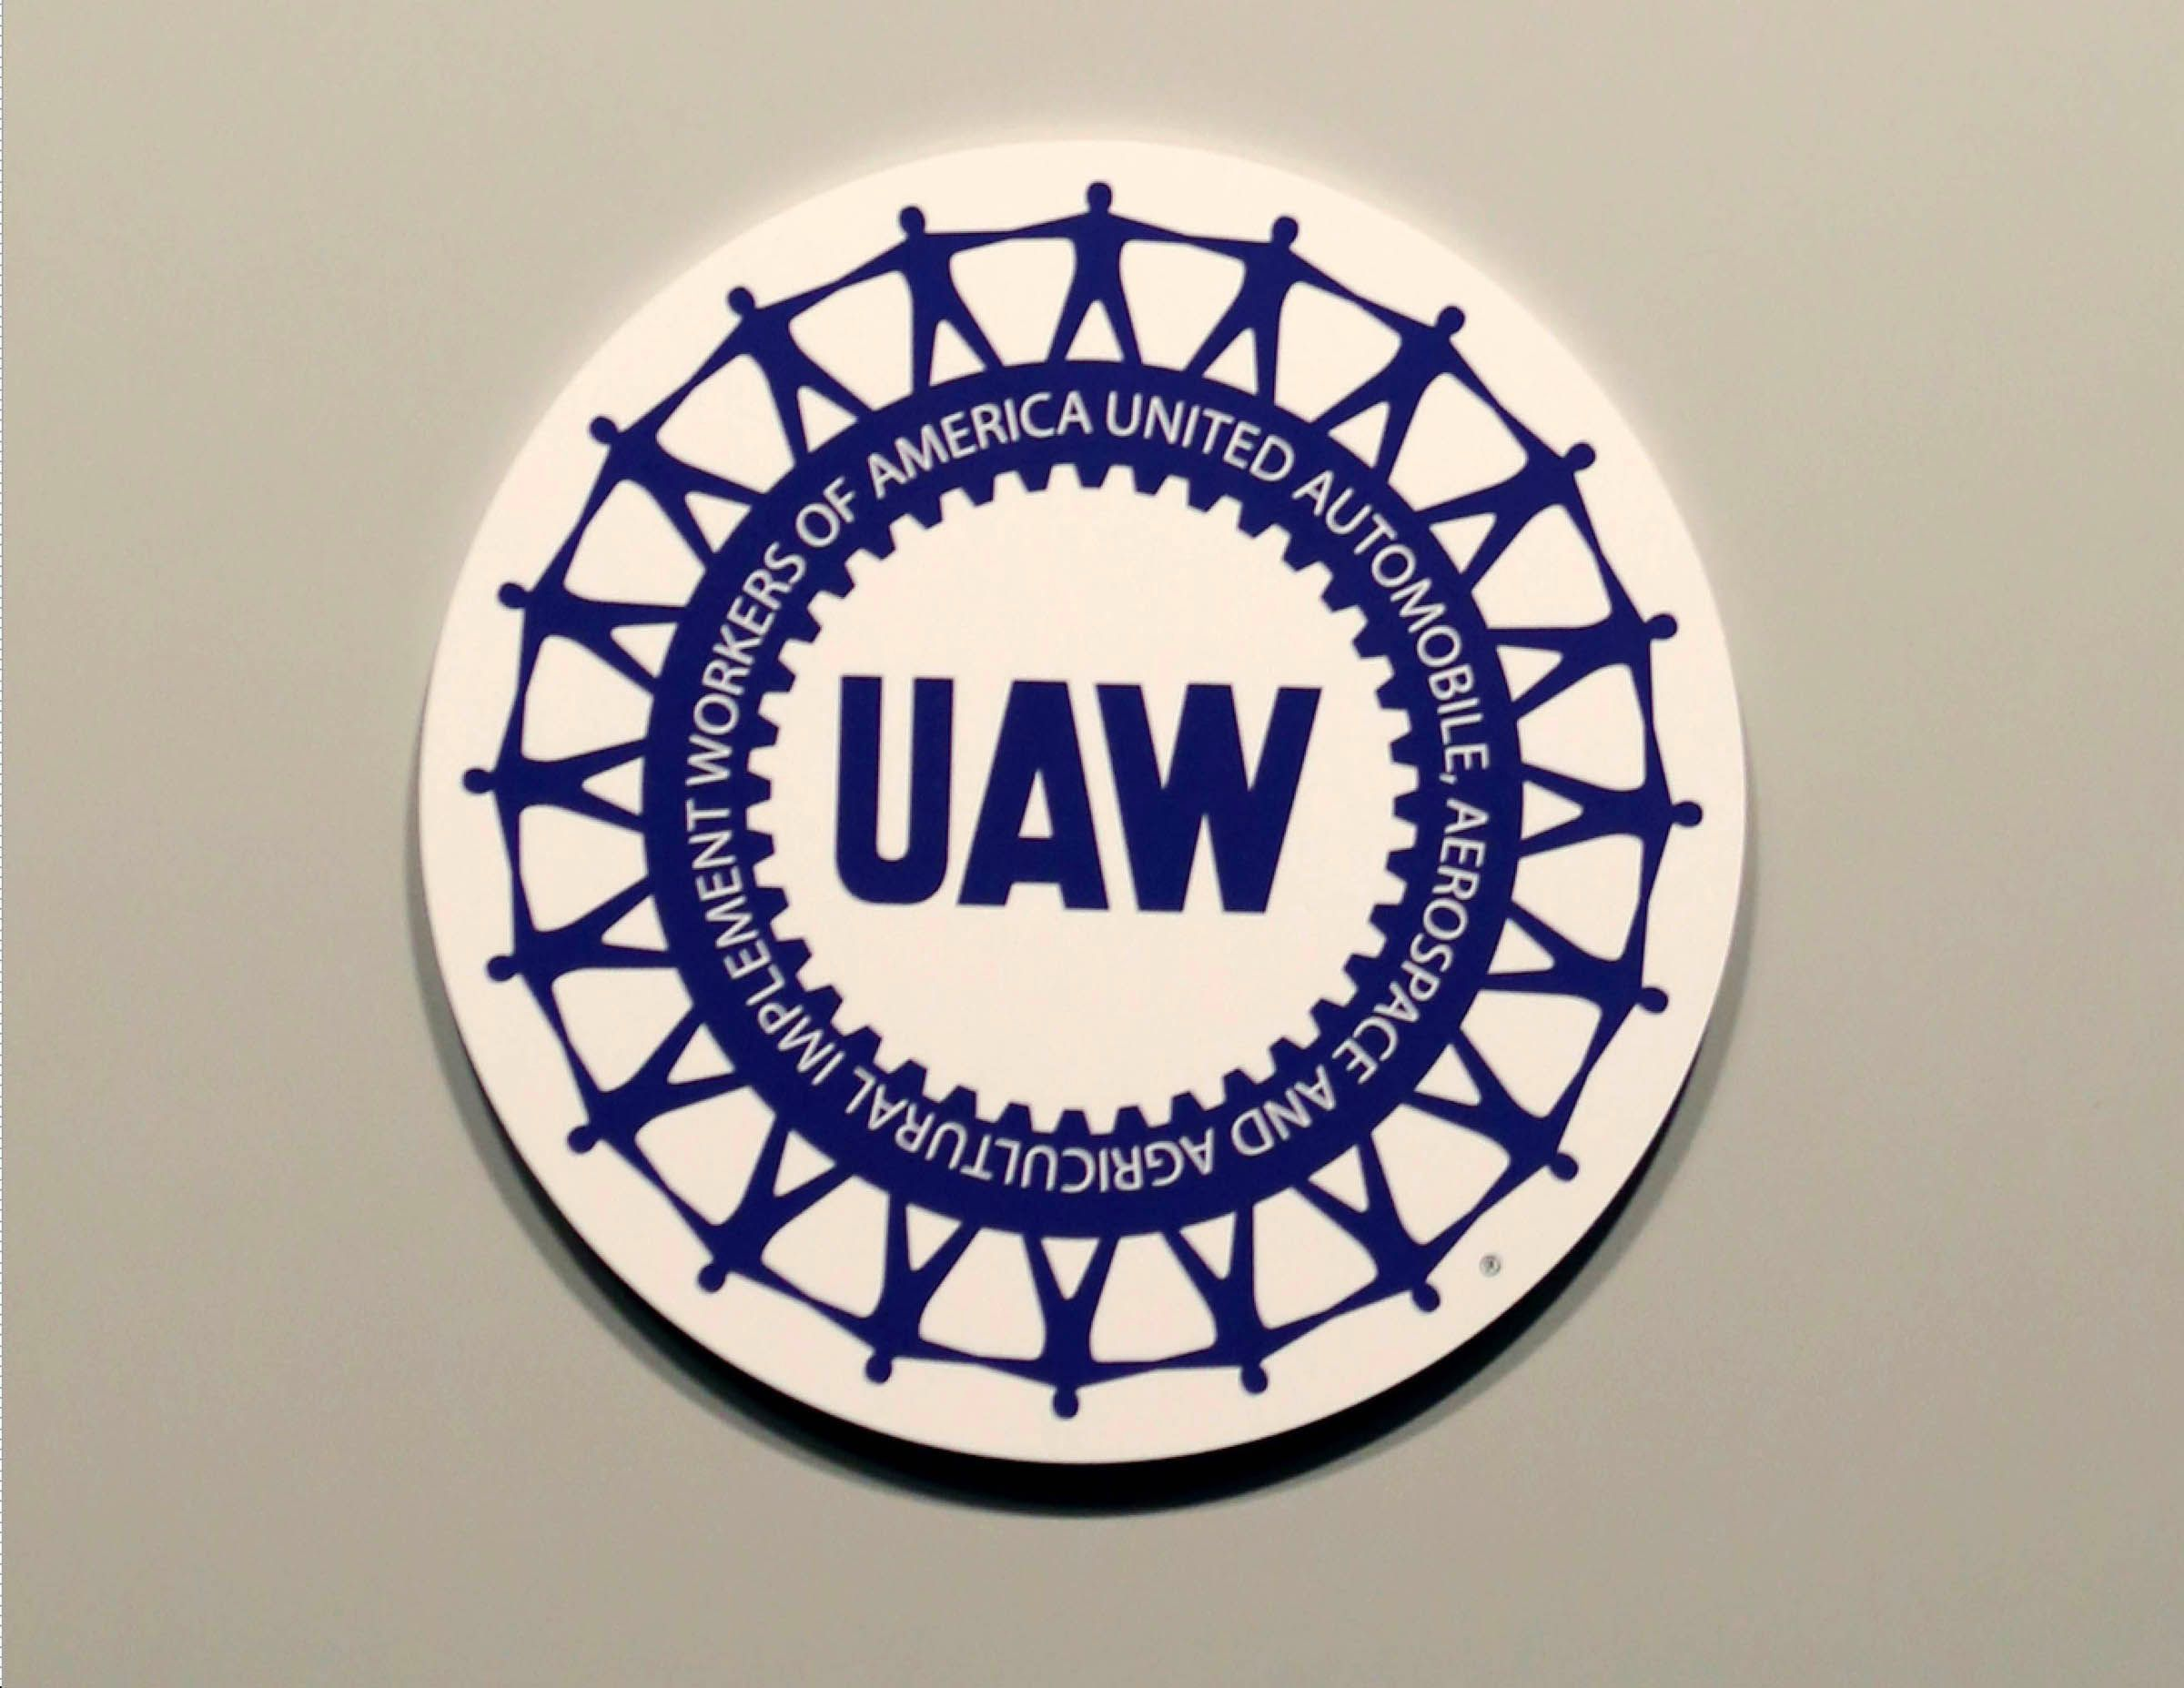 Vance Pearson has resigned from his post as director of UAW Region 5 after the union launched an effort to oust him. He's also charged in the federal corruption probe.